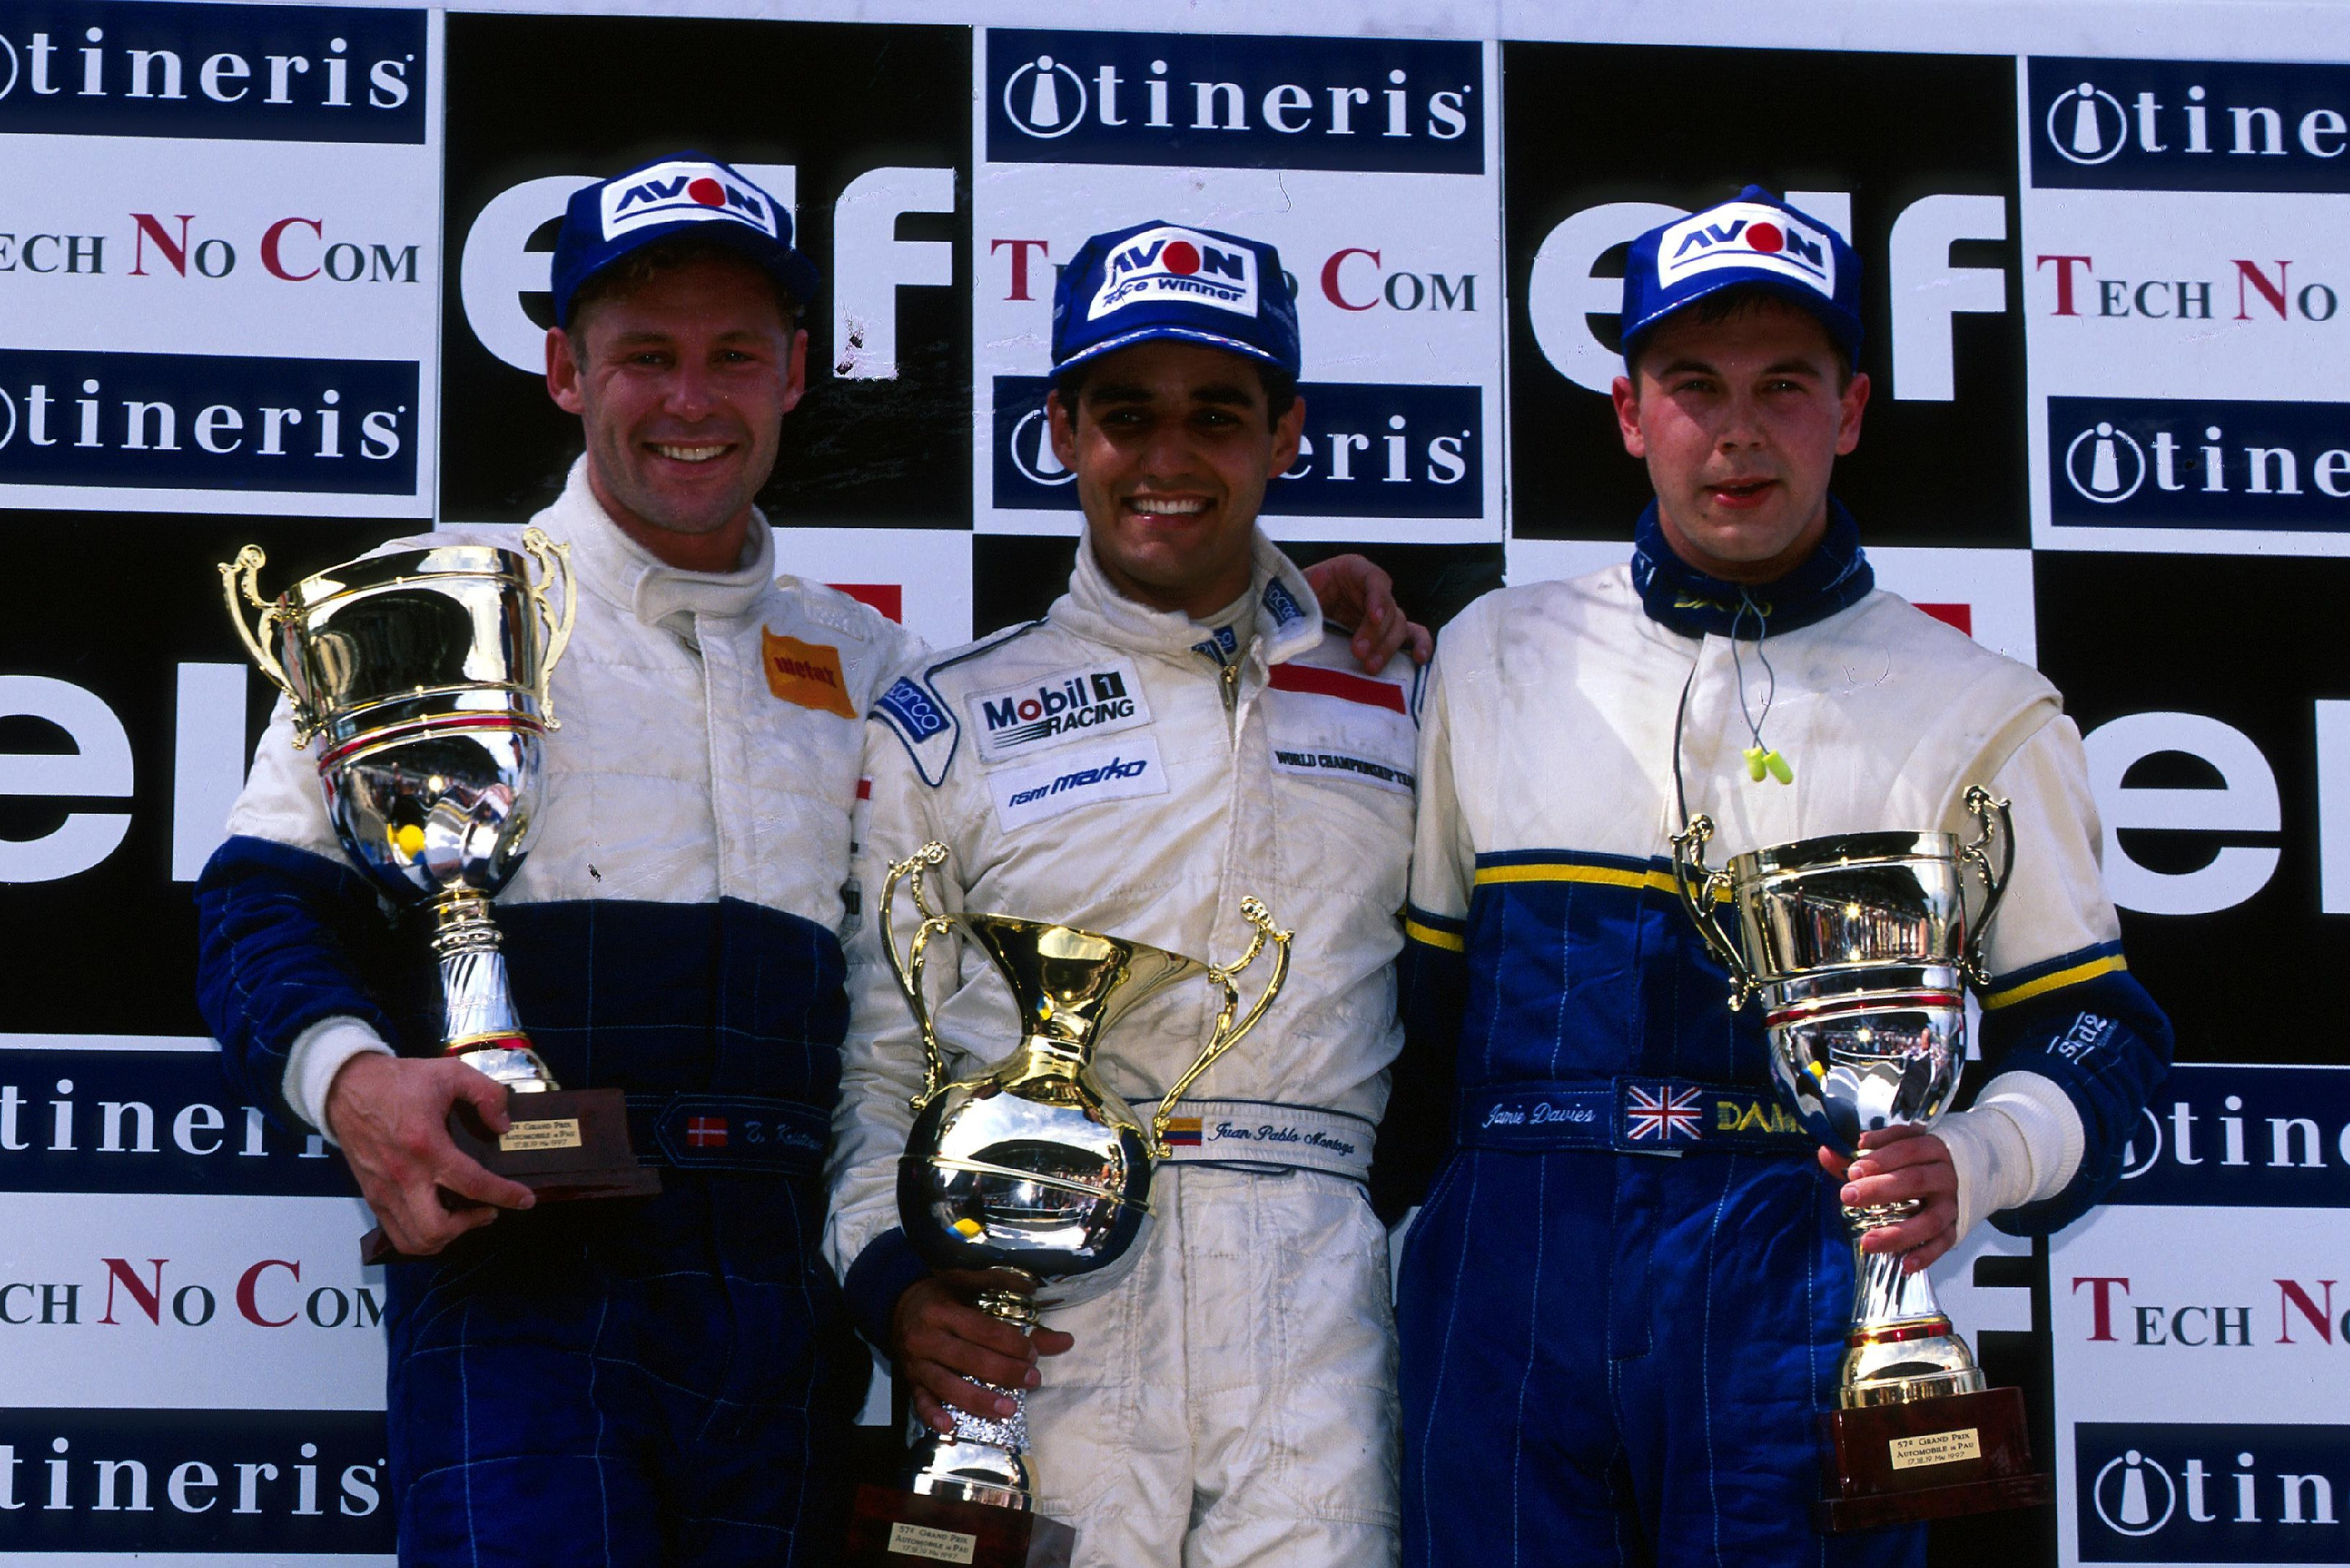 Davies (right), raced and beat Kristensen and Montoya in F3000 but lacked finance to reach F1